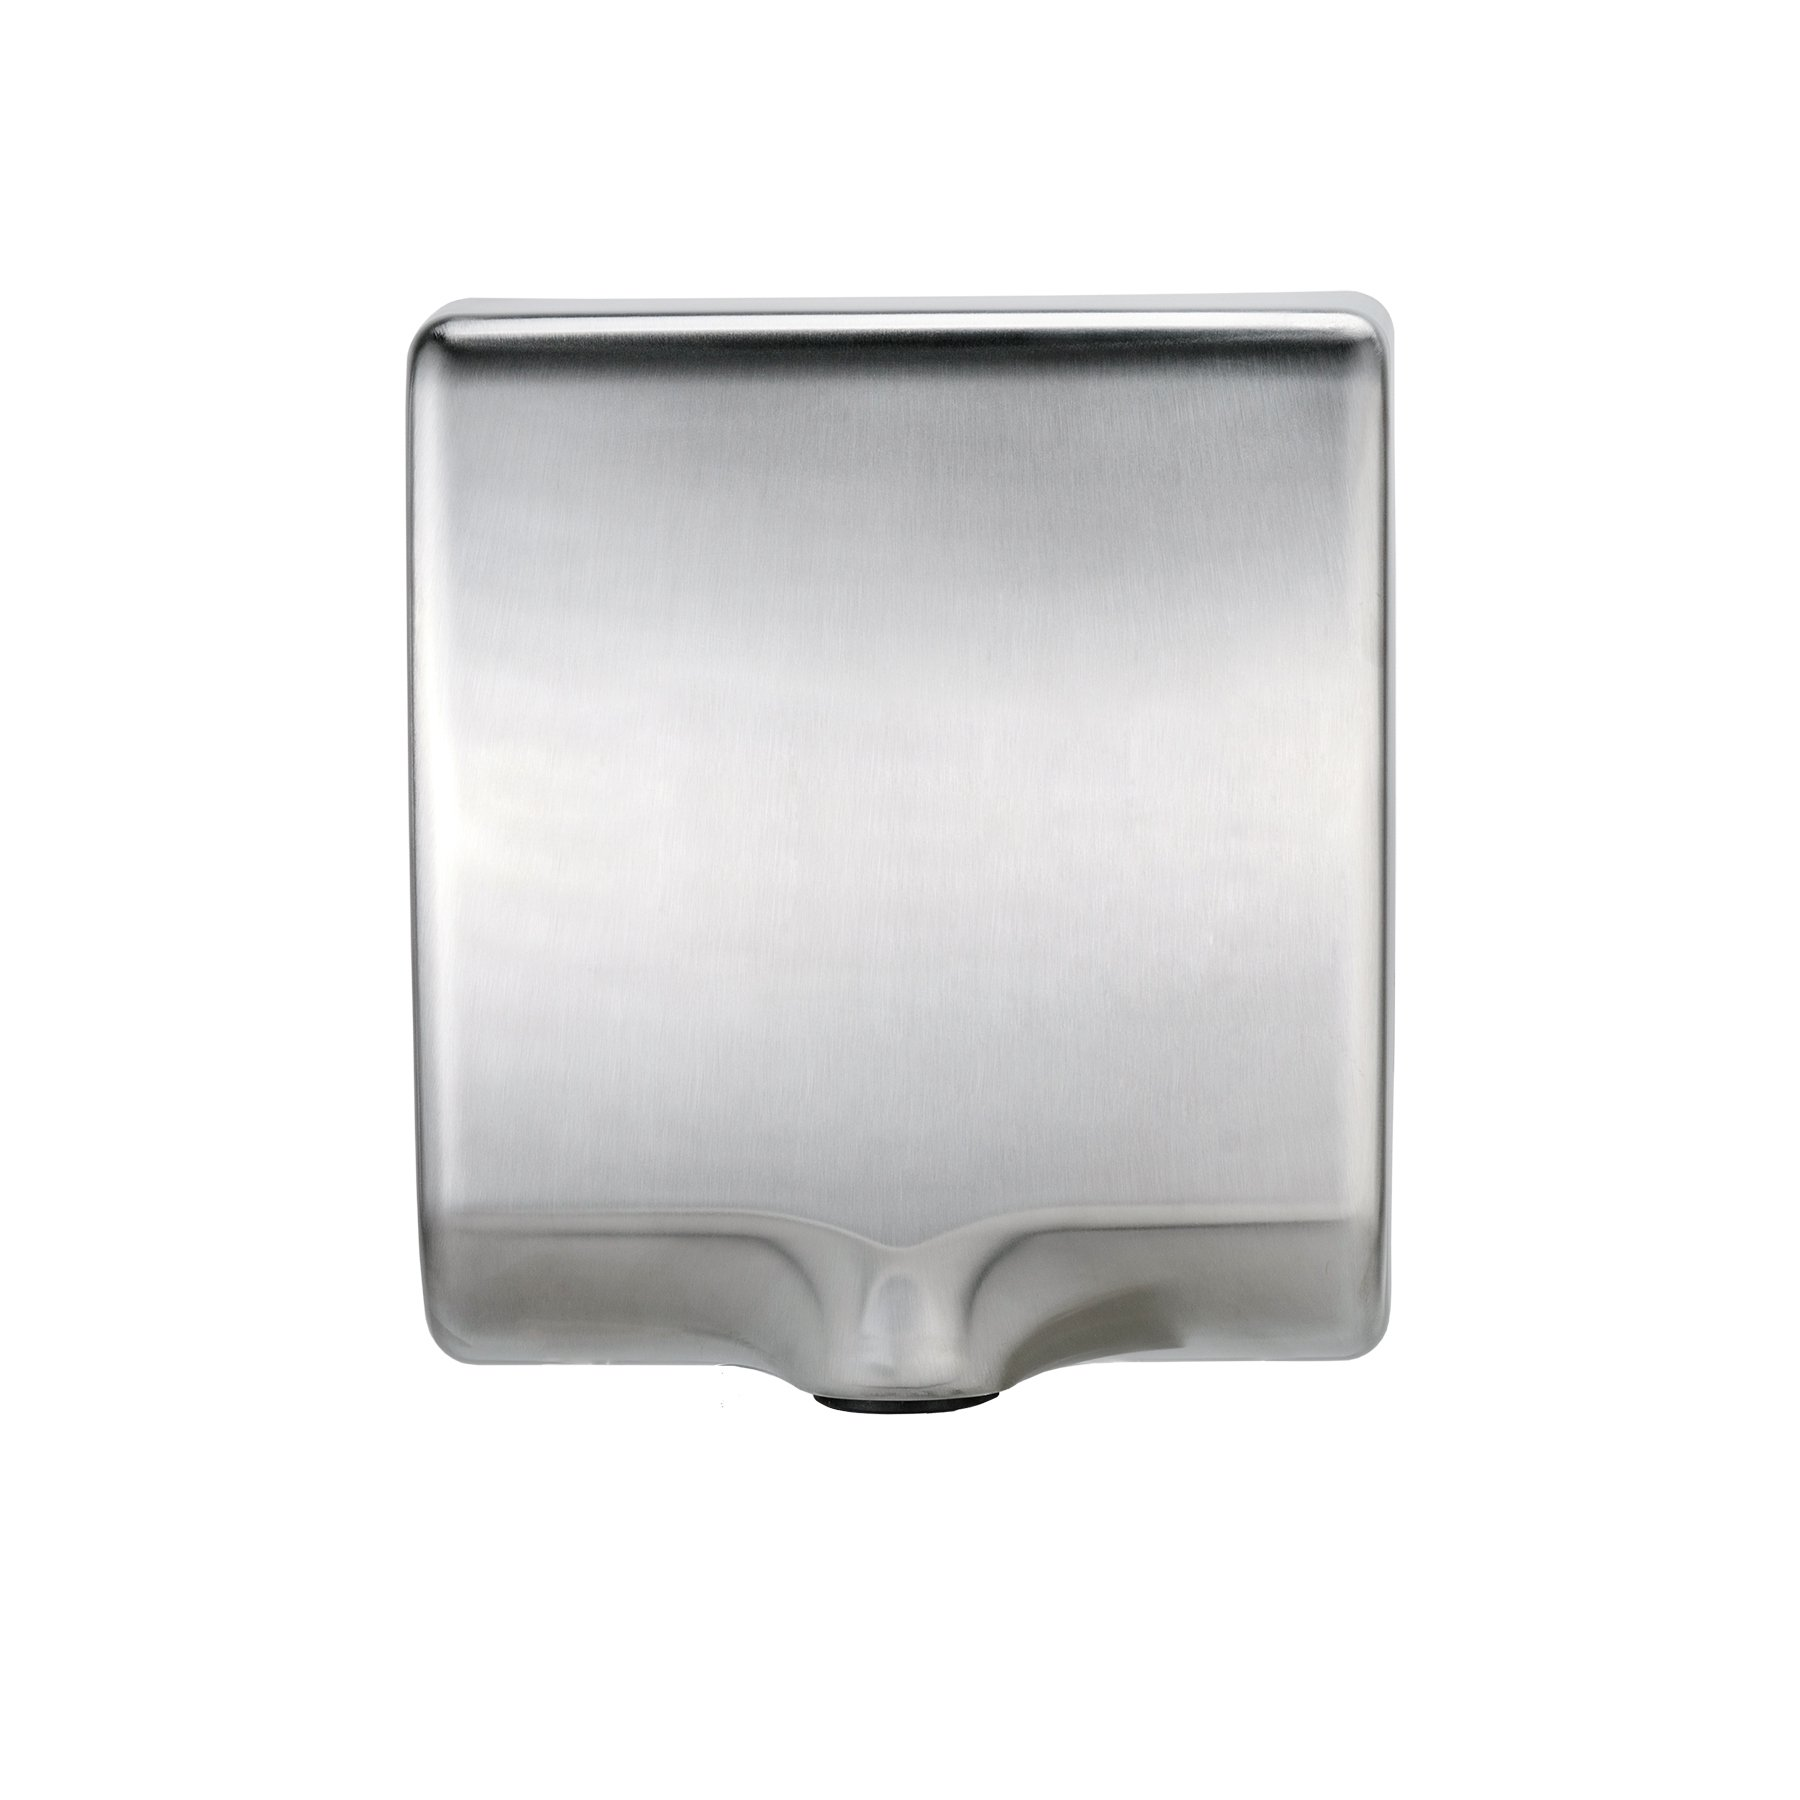 Automatic Hand Dryer High Speed Heavy Duty 1800w Matte Finished Durable Stainless Steel Hand Dryer Durable Low Energy Consumption